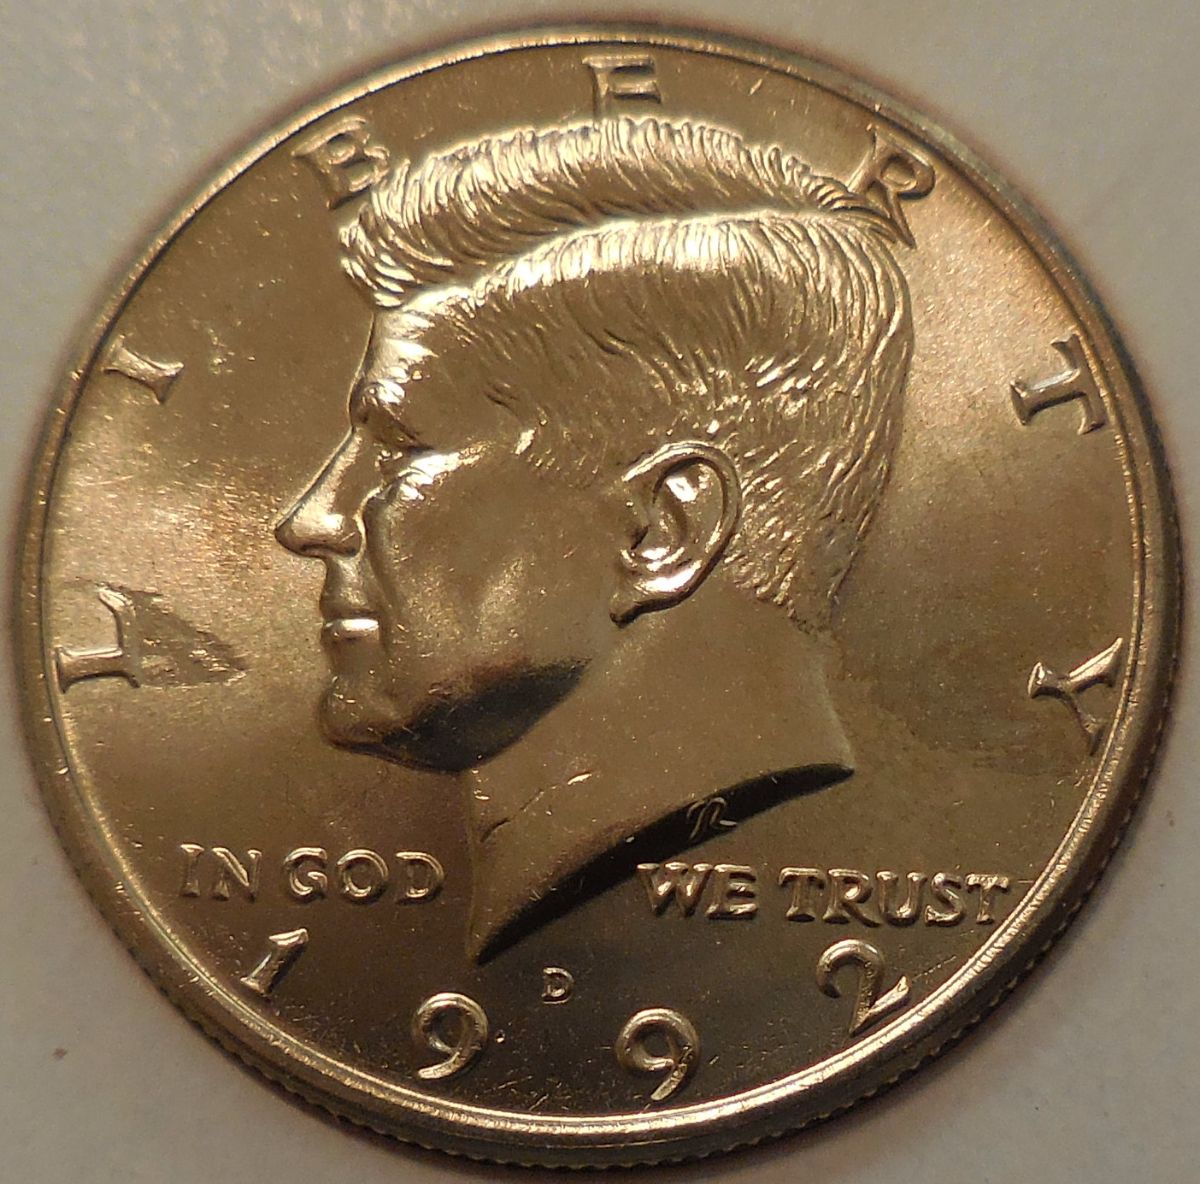 ~15 Direct Fit 27mm Coin Capsule For US 25 Cent Quarters 1796-1828